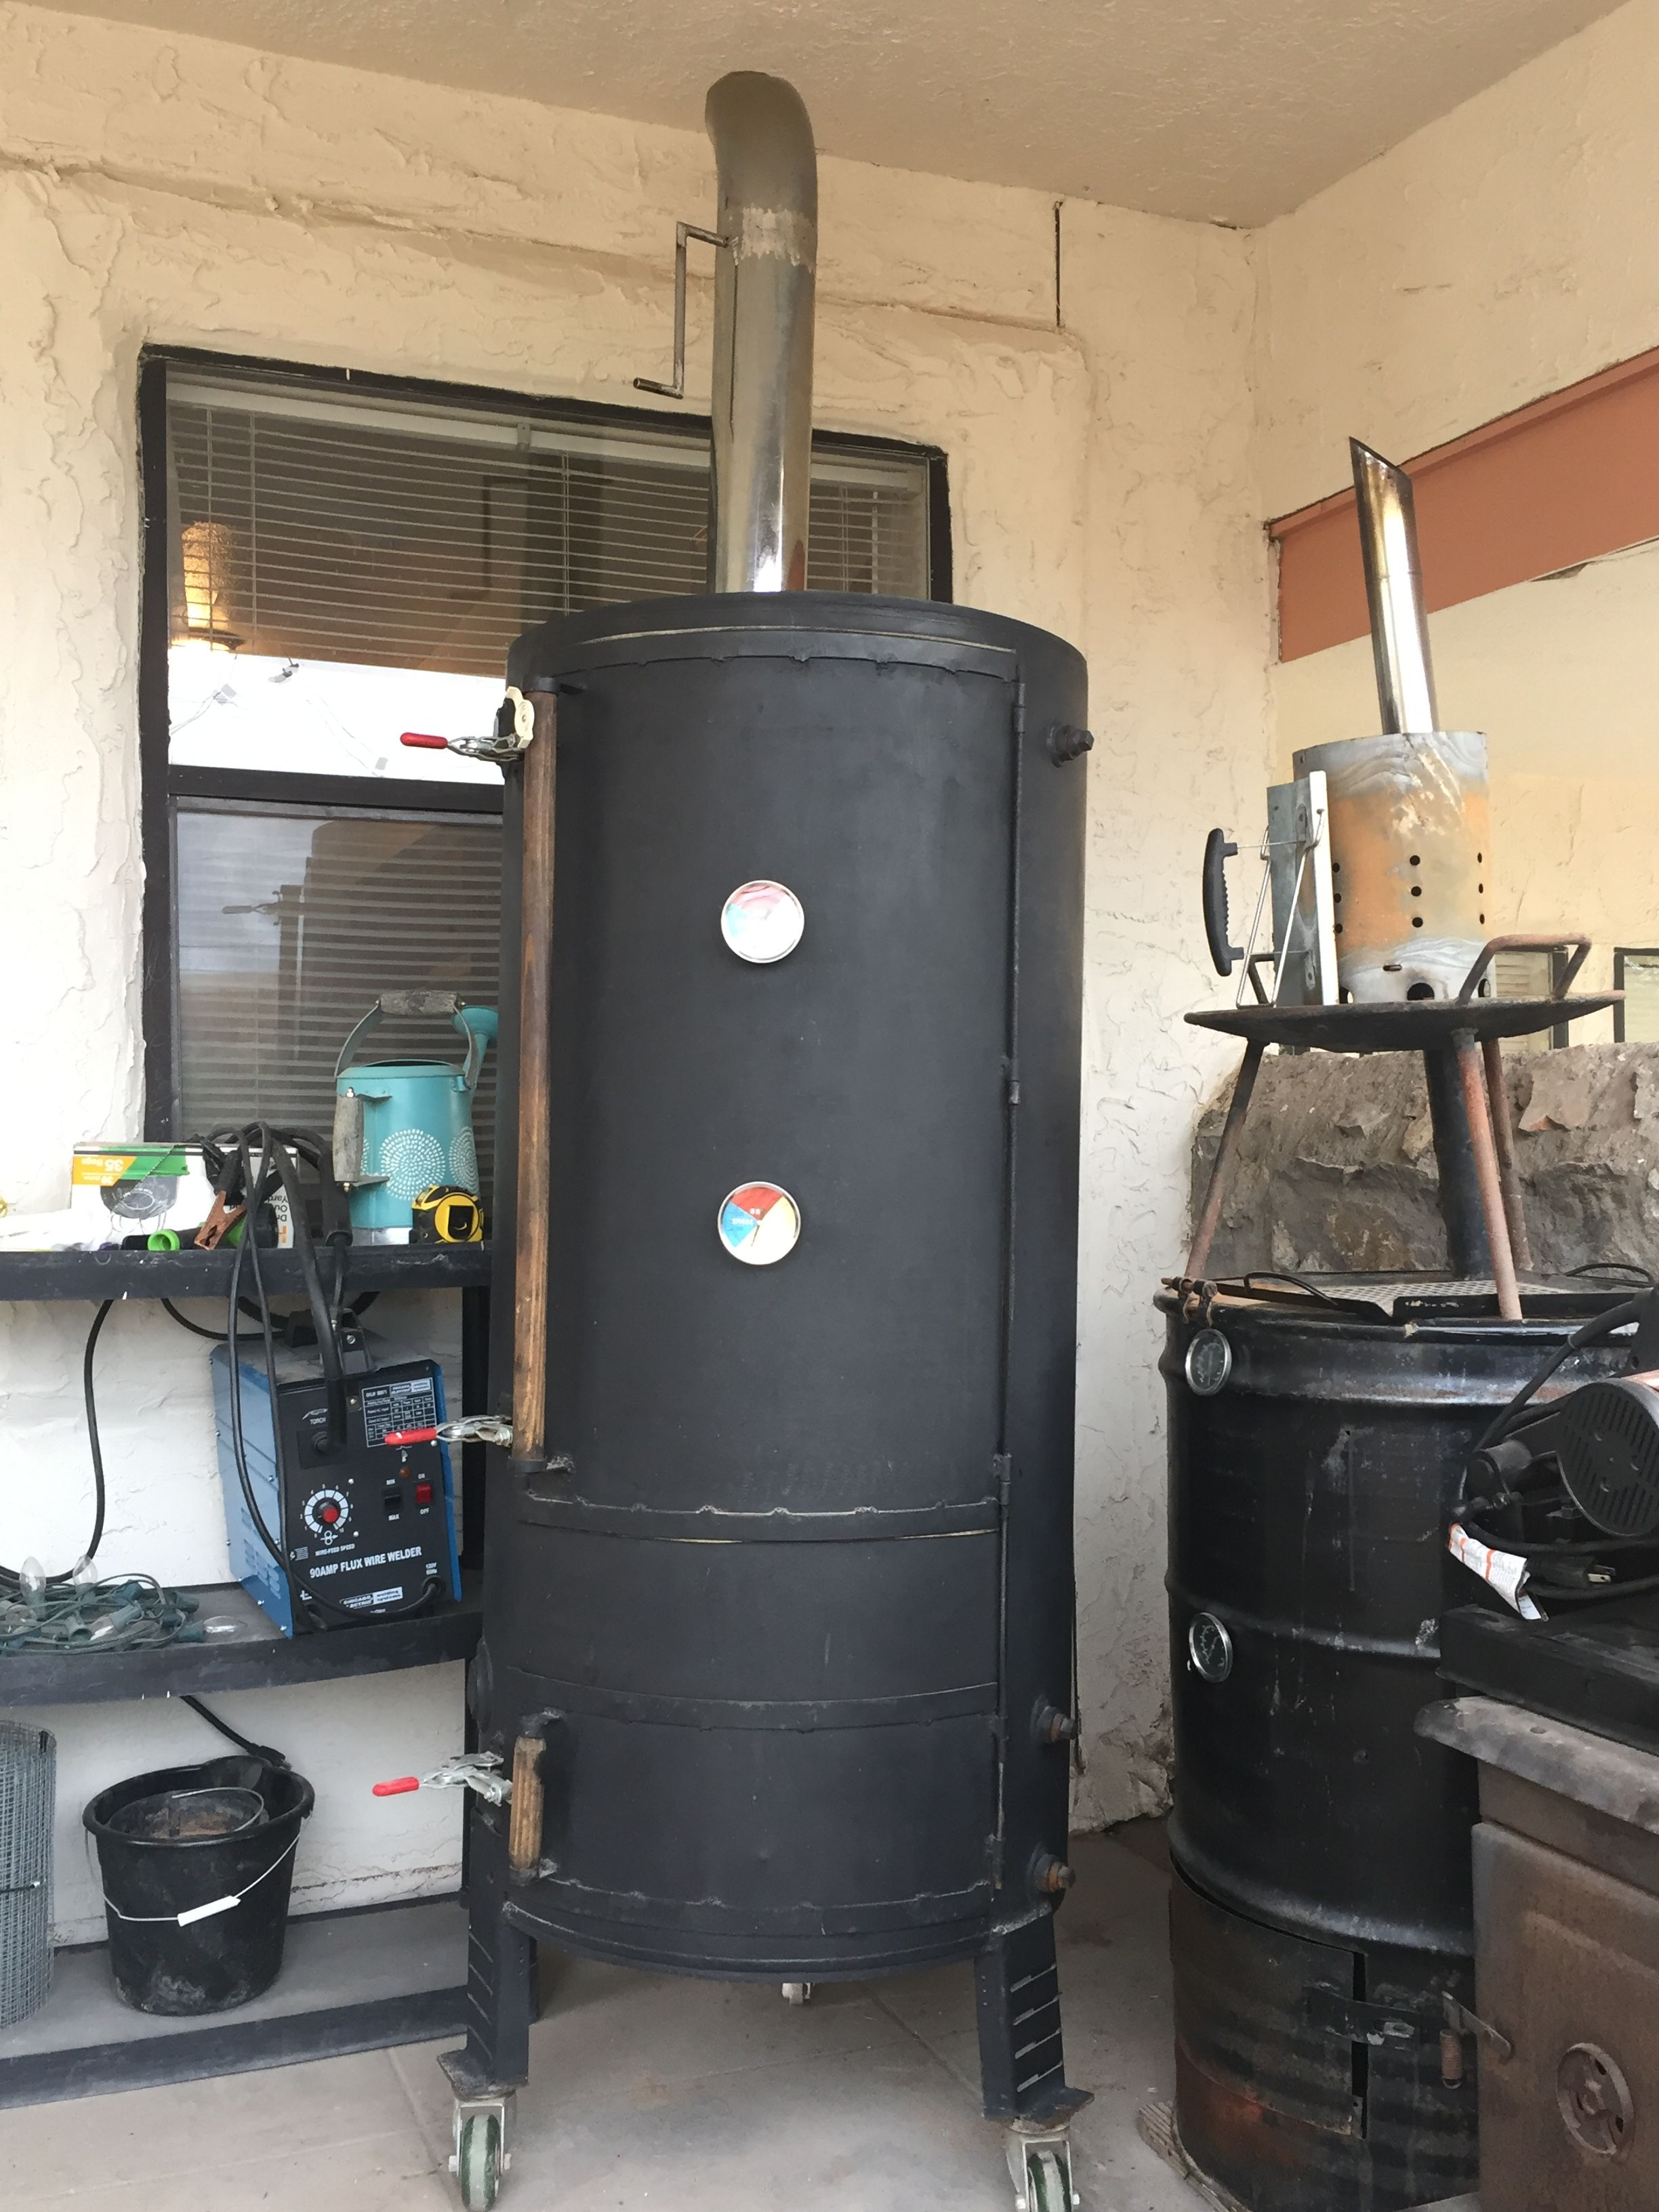 100 Gallon Water Heater Smoker With Semi Truck Smoke Stack And Damper Diy Bbq Water Heater Homemade Smoker